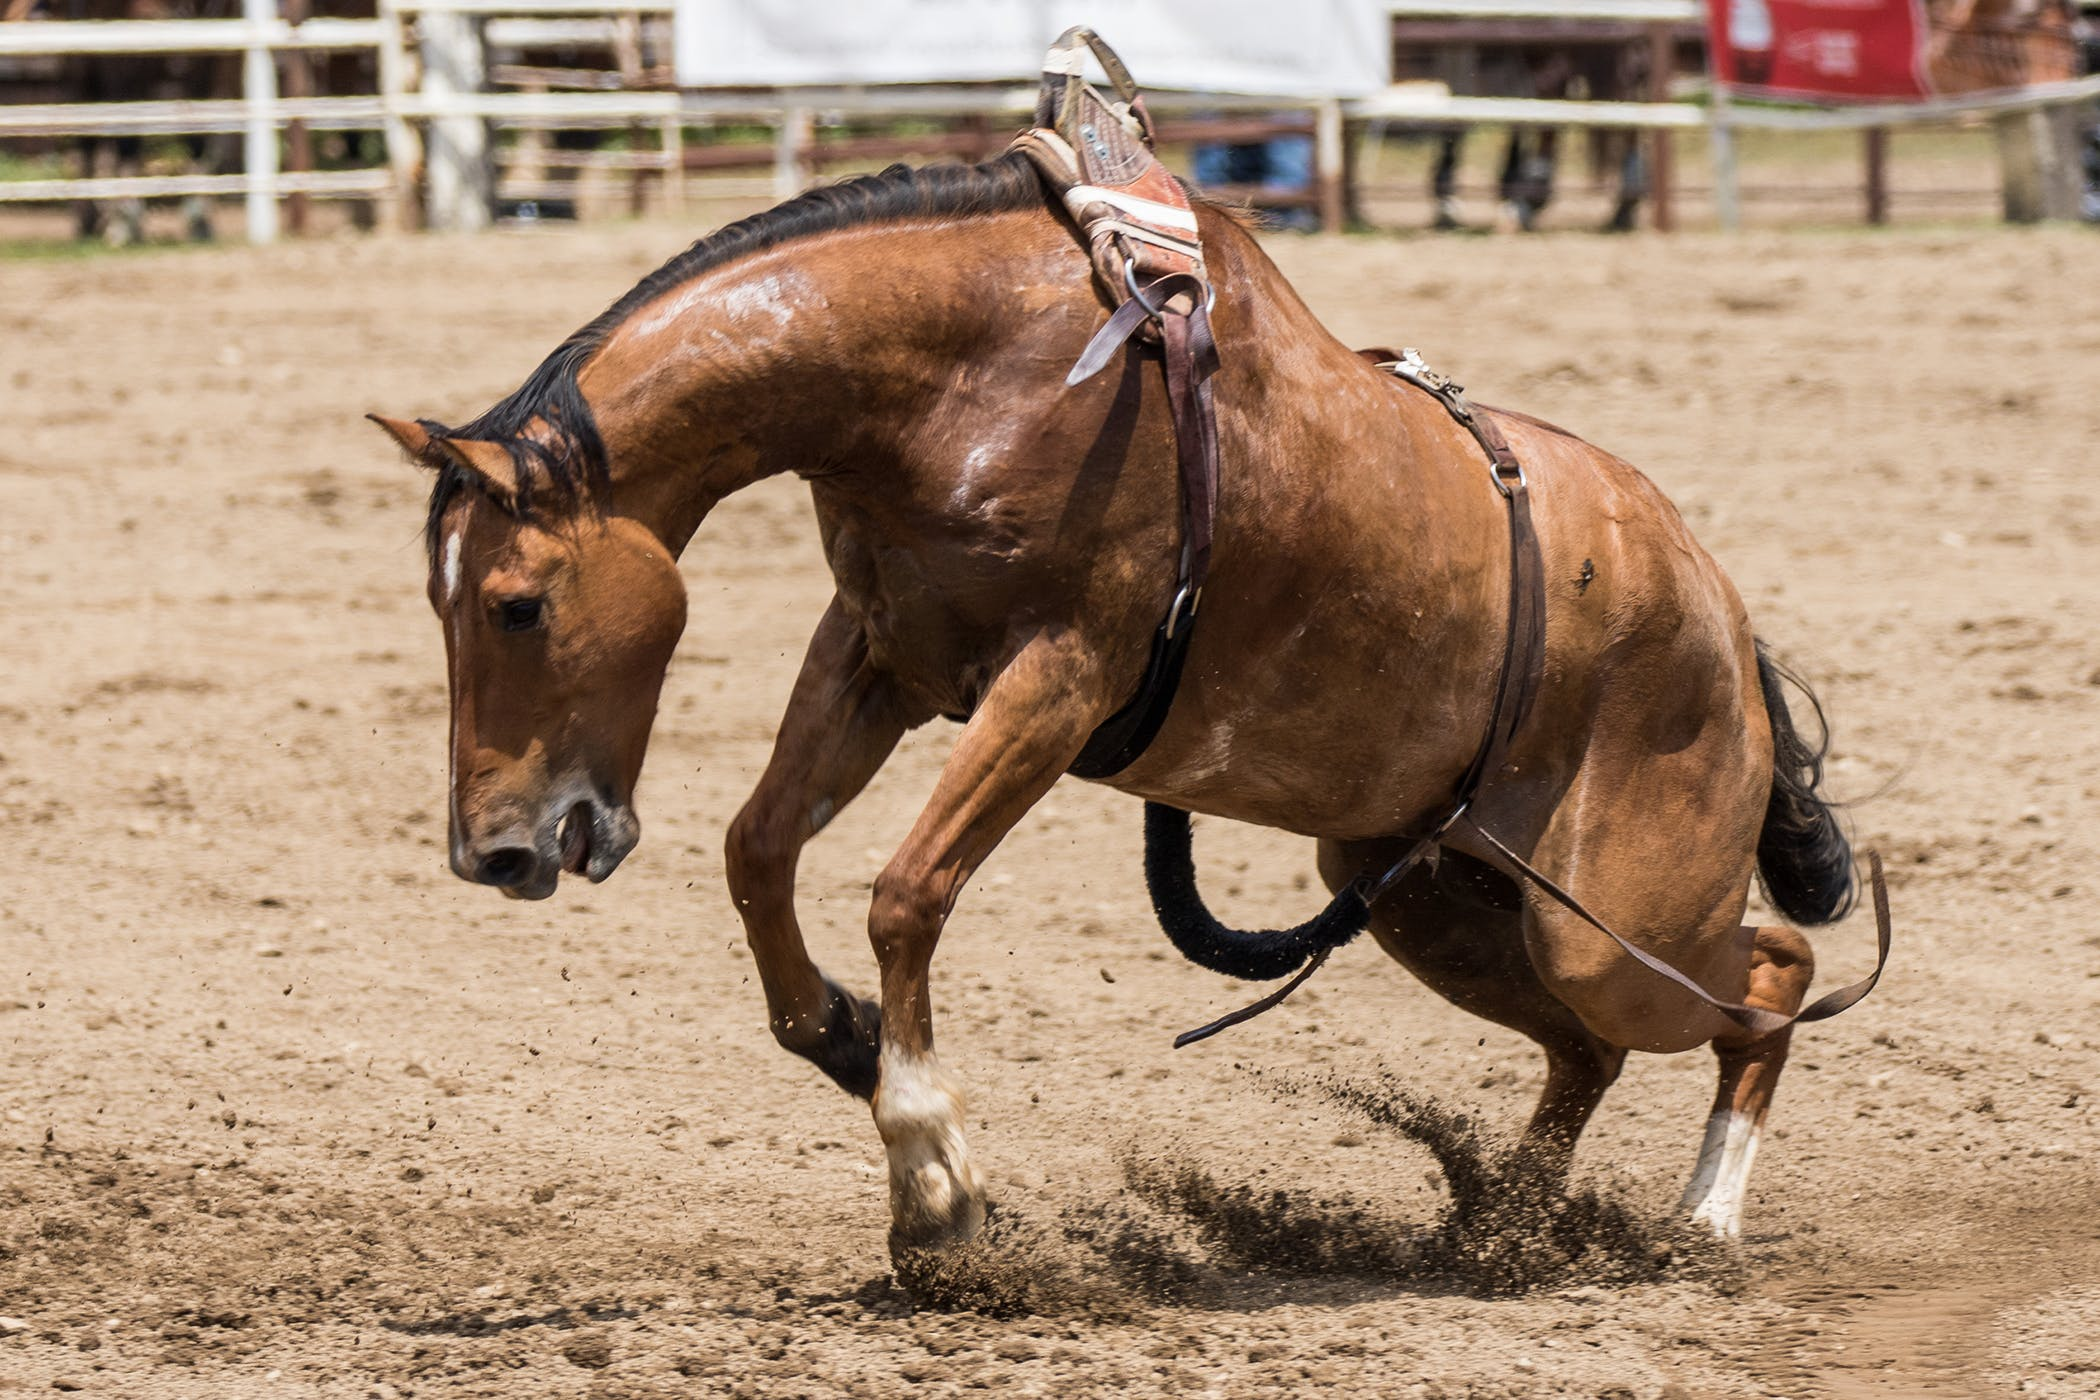 Separation Anxiety in Horses - Symptoms, Causes, Diagnosis